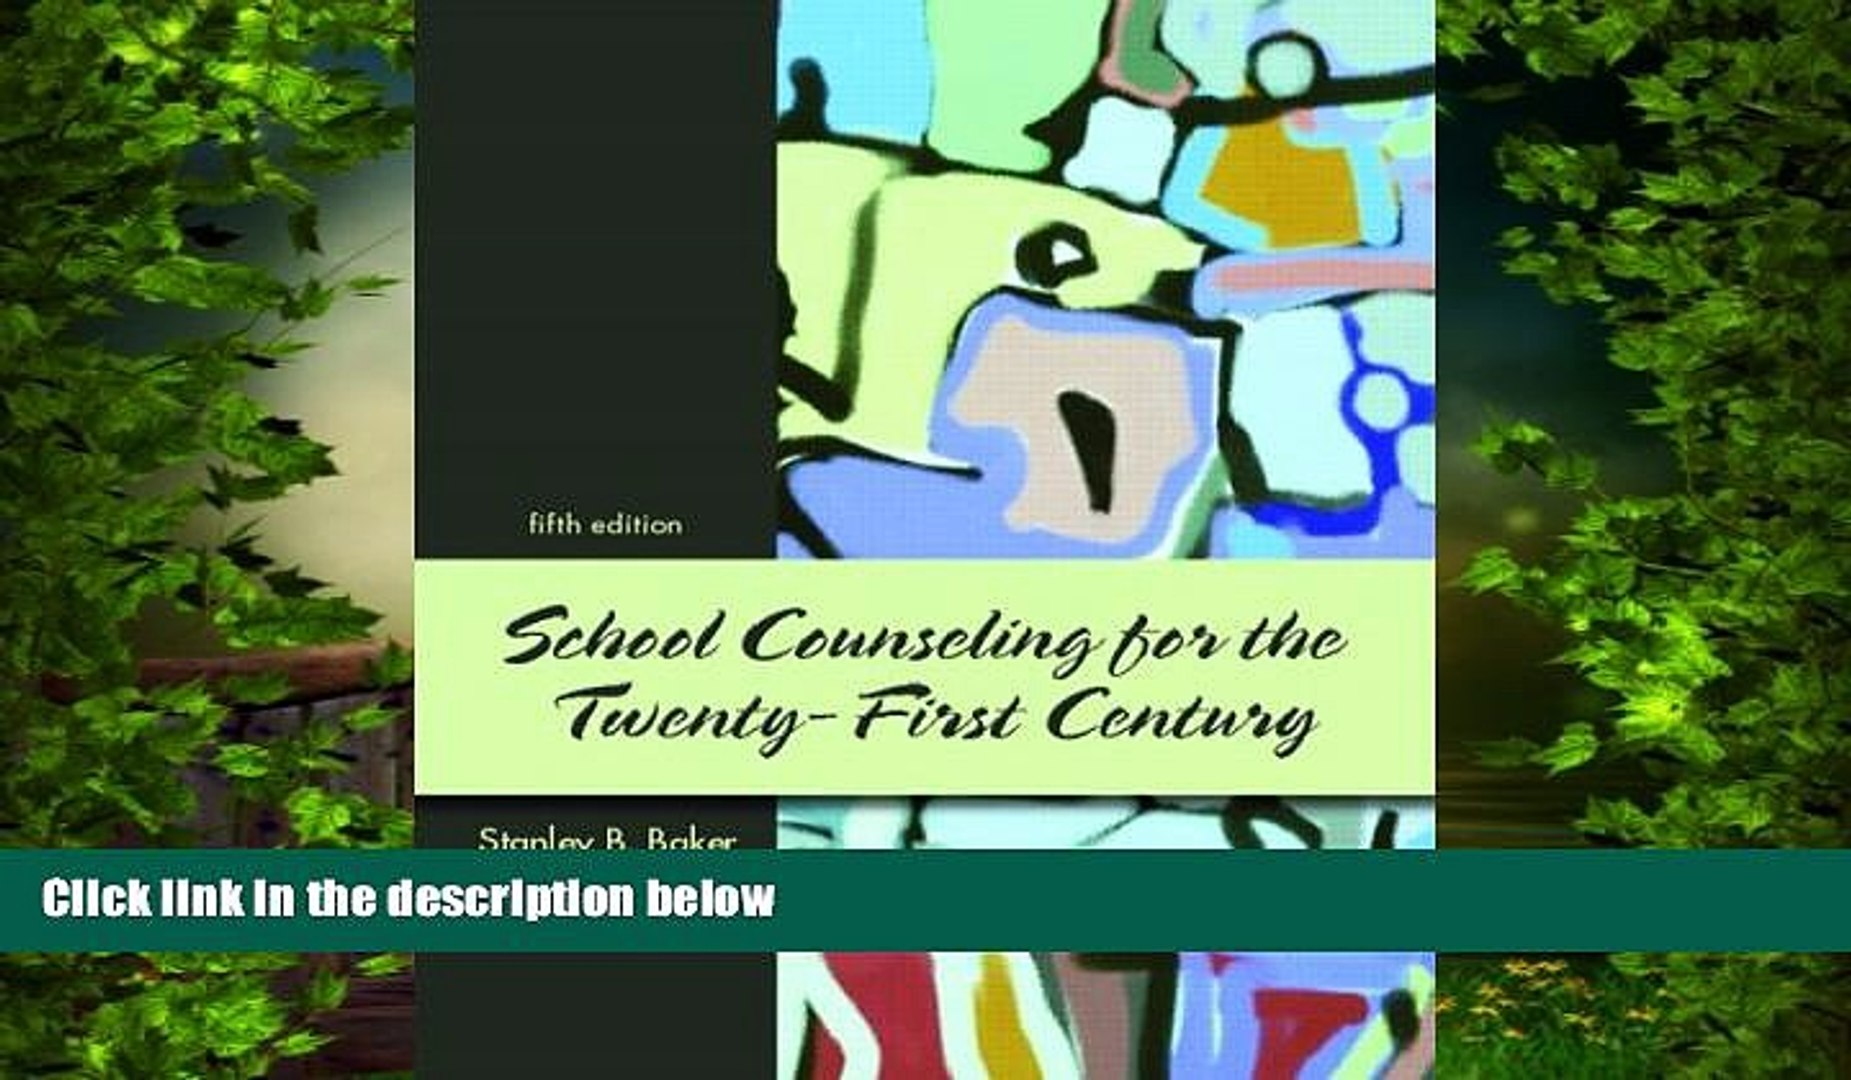 Best Price School Counseling for the 21st Century (5th Edition) Stanley B. Baker On Audio